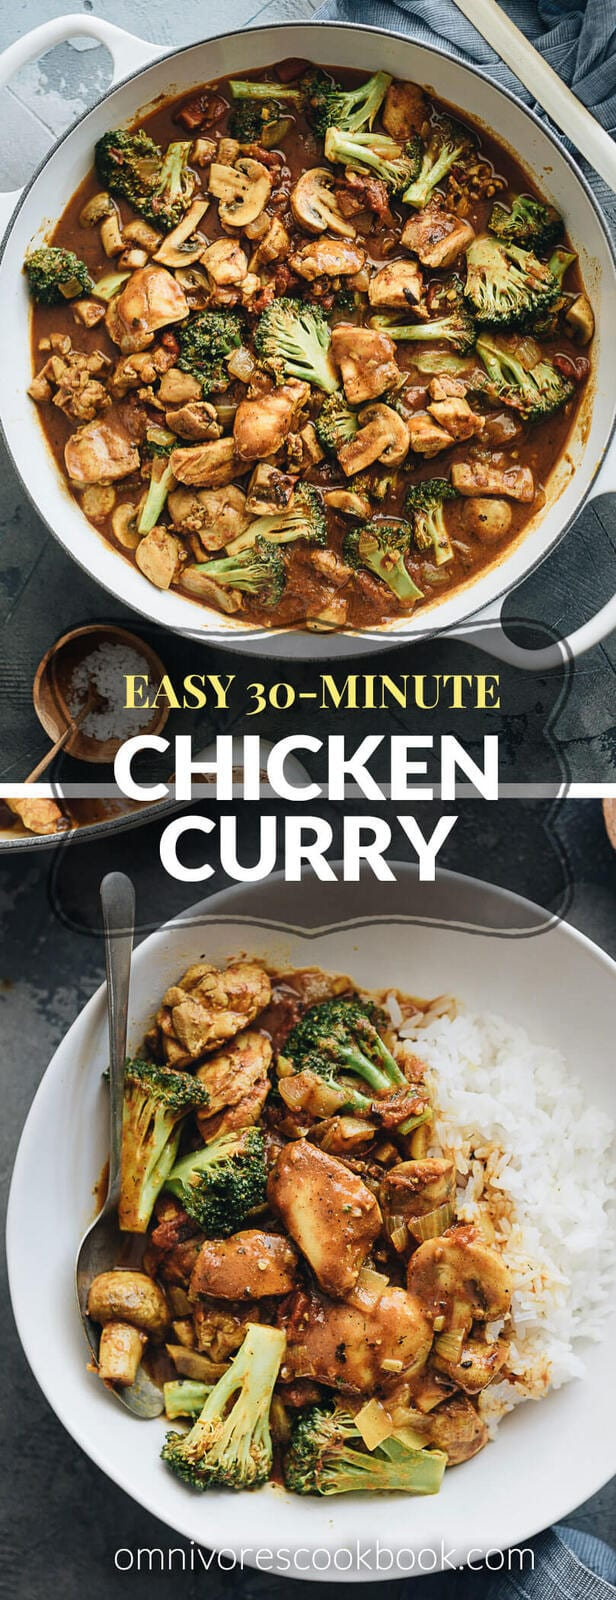 Easy Healthy Chicken Curry - A quick and simple recipe that produces super rich gravy and juicy chicken and is loaded with vegetables. #chinese #butter #yellow #thighs #glutenfree